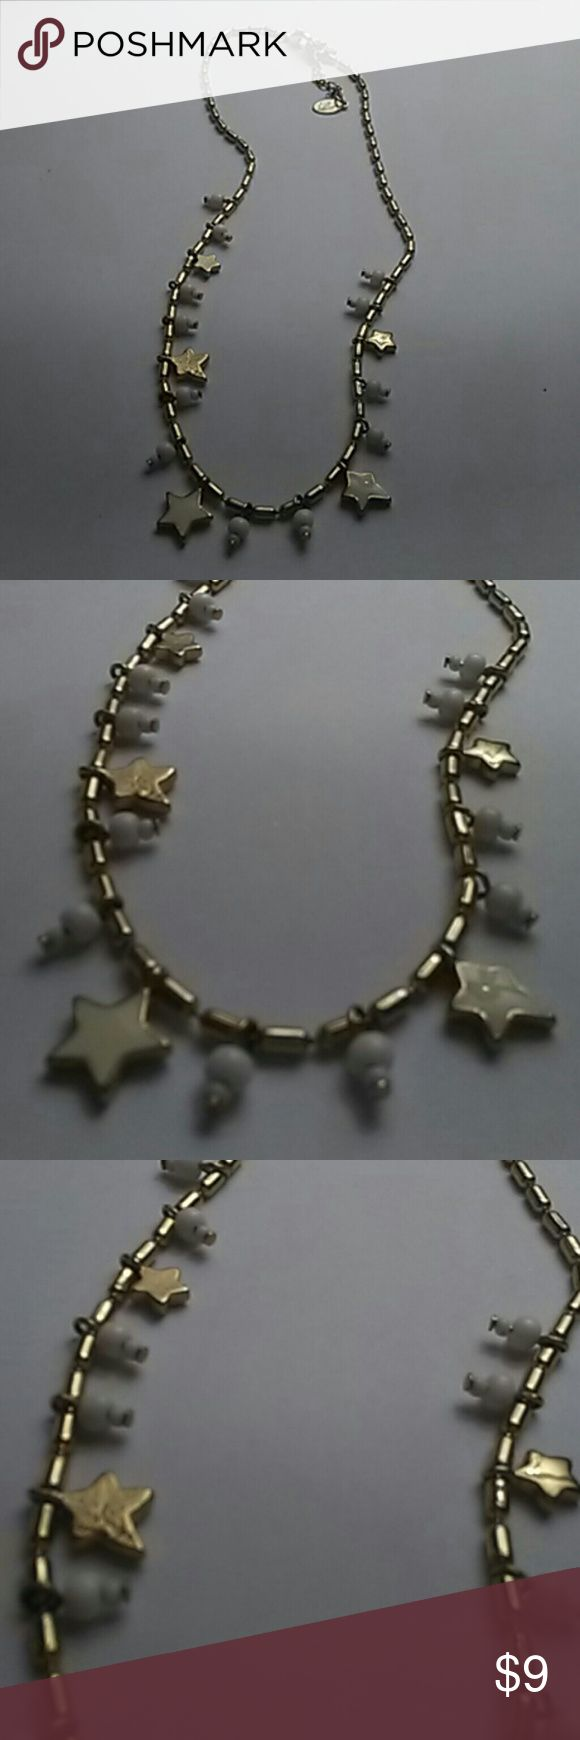 Liz Claiborne Star Charm Necklace Liz Claiborne Star Charm Necklace with Goldtone dangling stars and dangling white beads Liz Claiborne Jewelry Necklaces